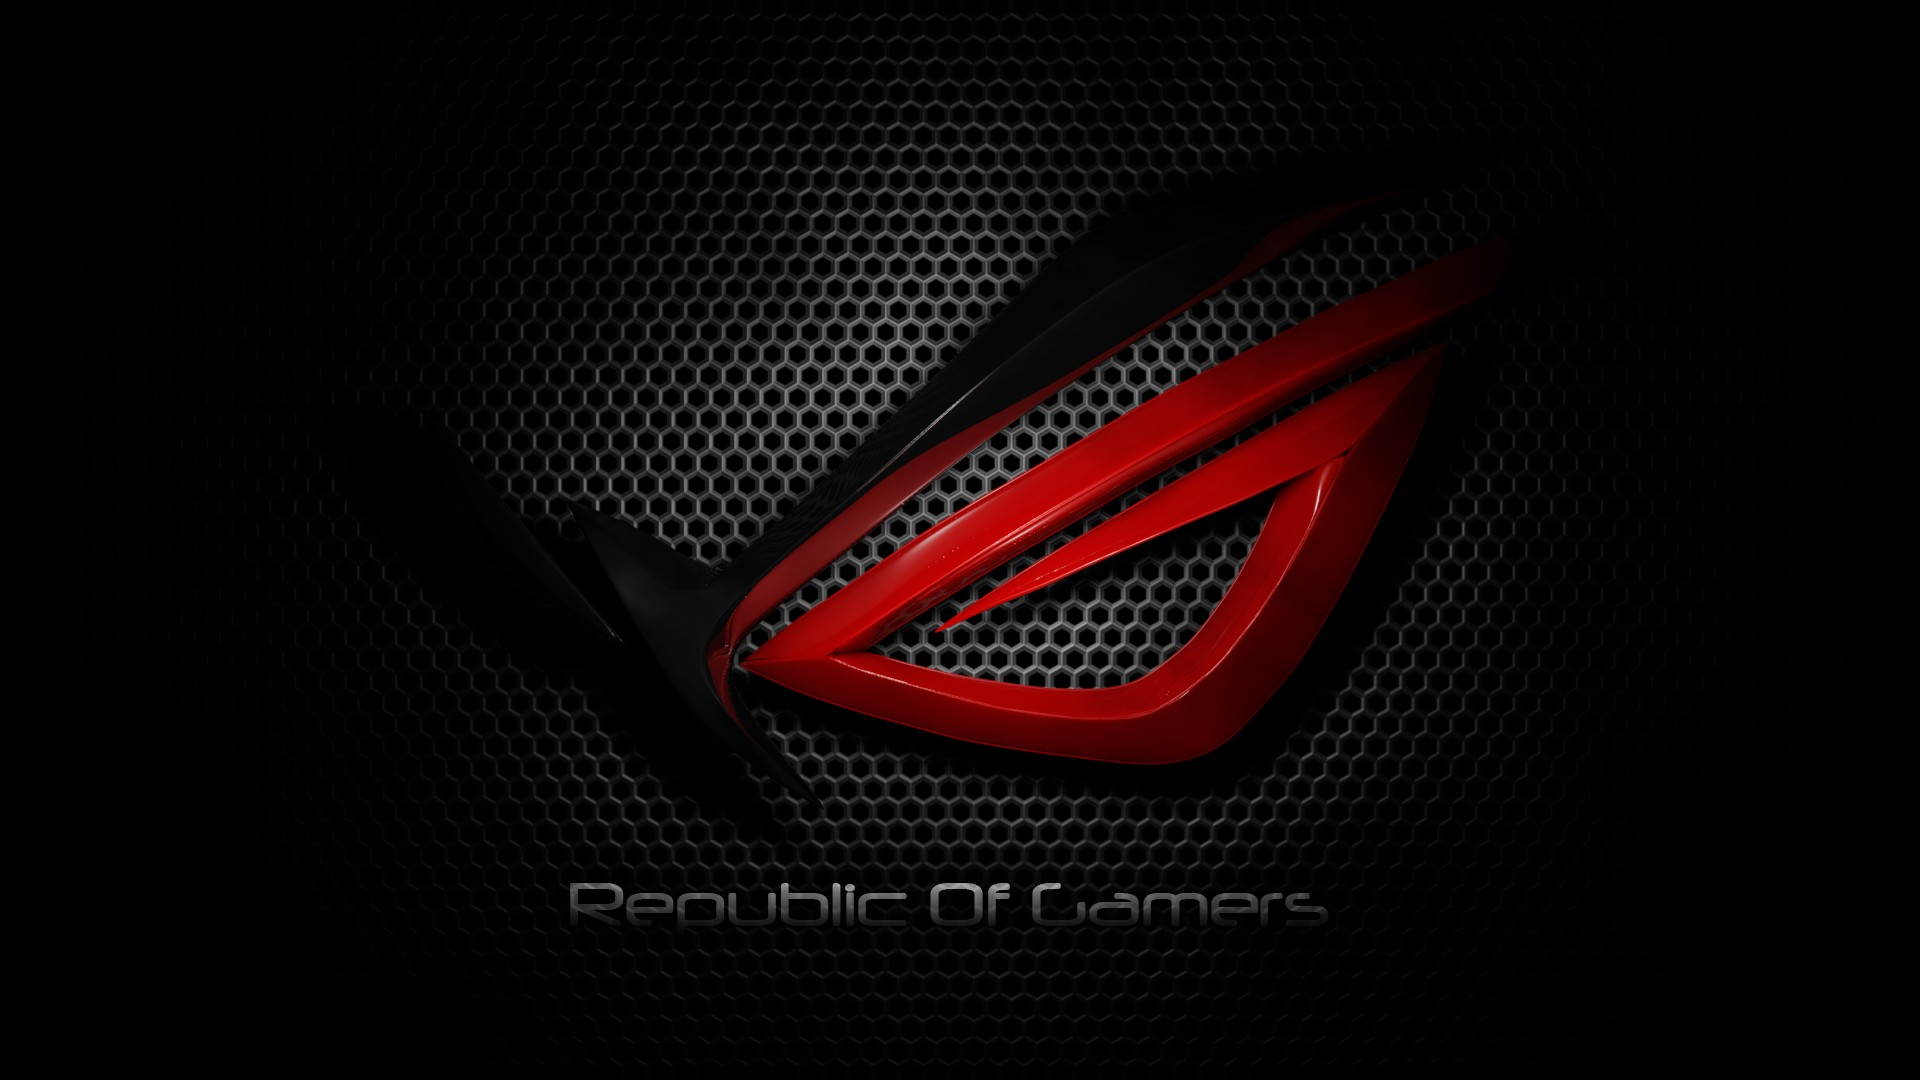 Asus Mobile Wallpaper: RoG Wallpaper ·① Download Free Stunning HD Backgrounds For